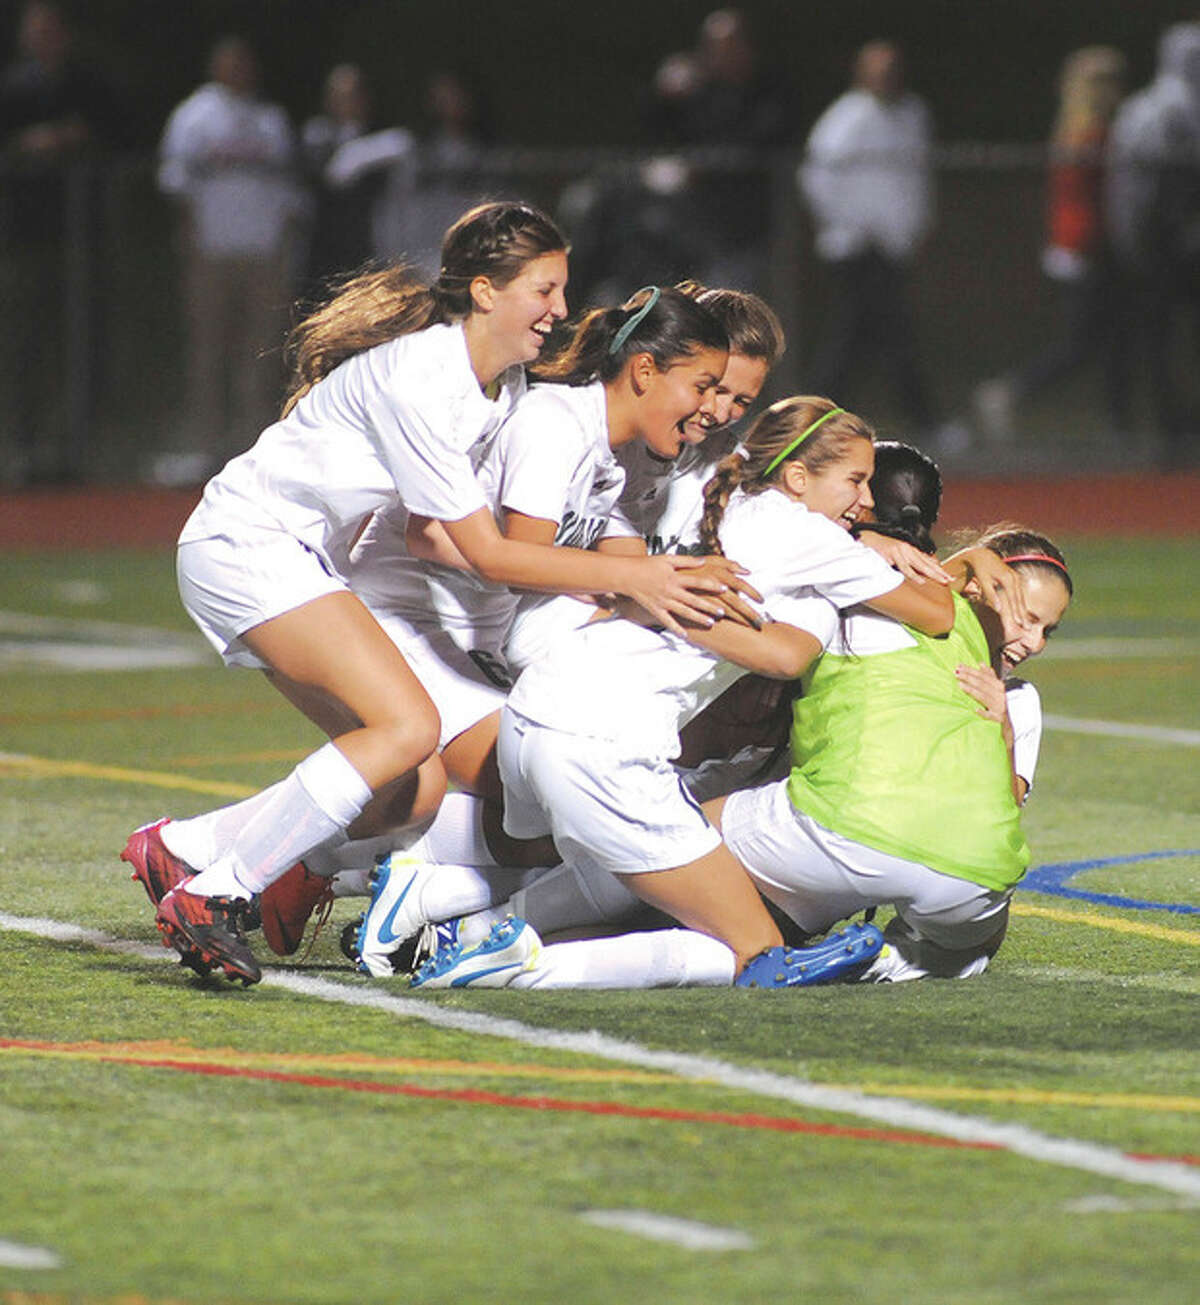 Hour photo/John Nash Members of the Norwalk High girls soccer team pile on goalkeeper Jasmine Kishimoto after the Bears defeated cross-town rival Brien McMahon 1-0 on Monday night.